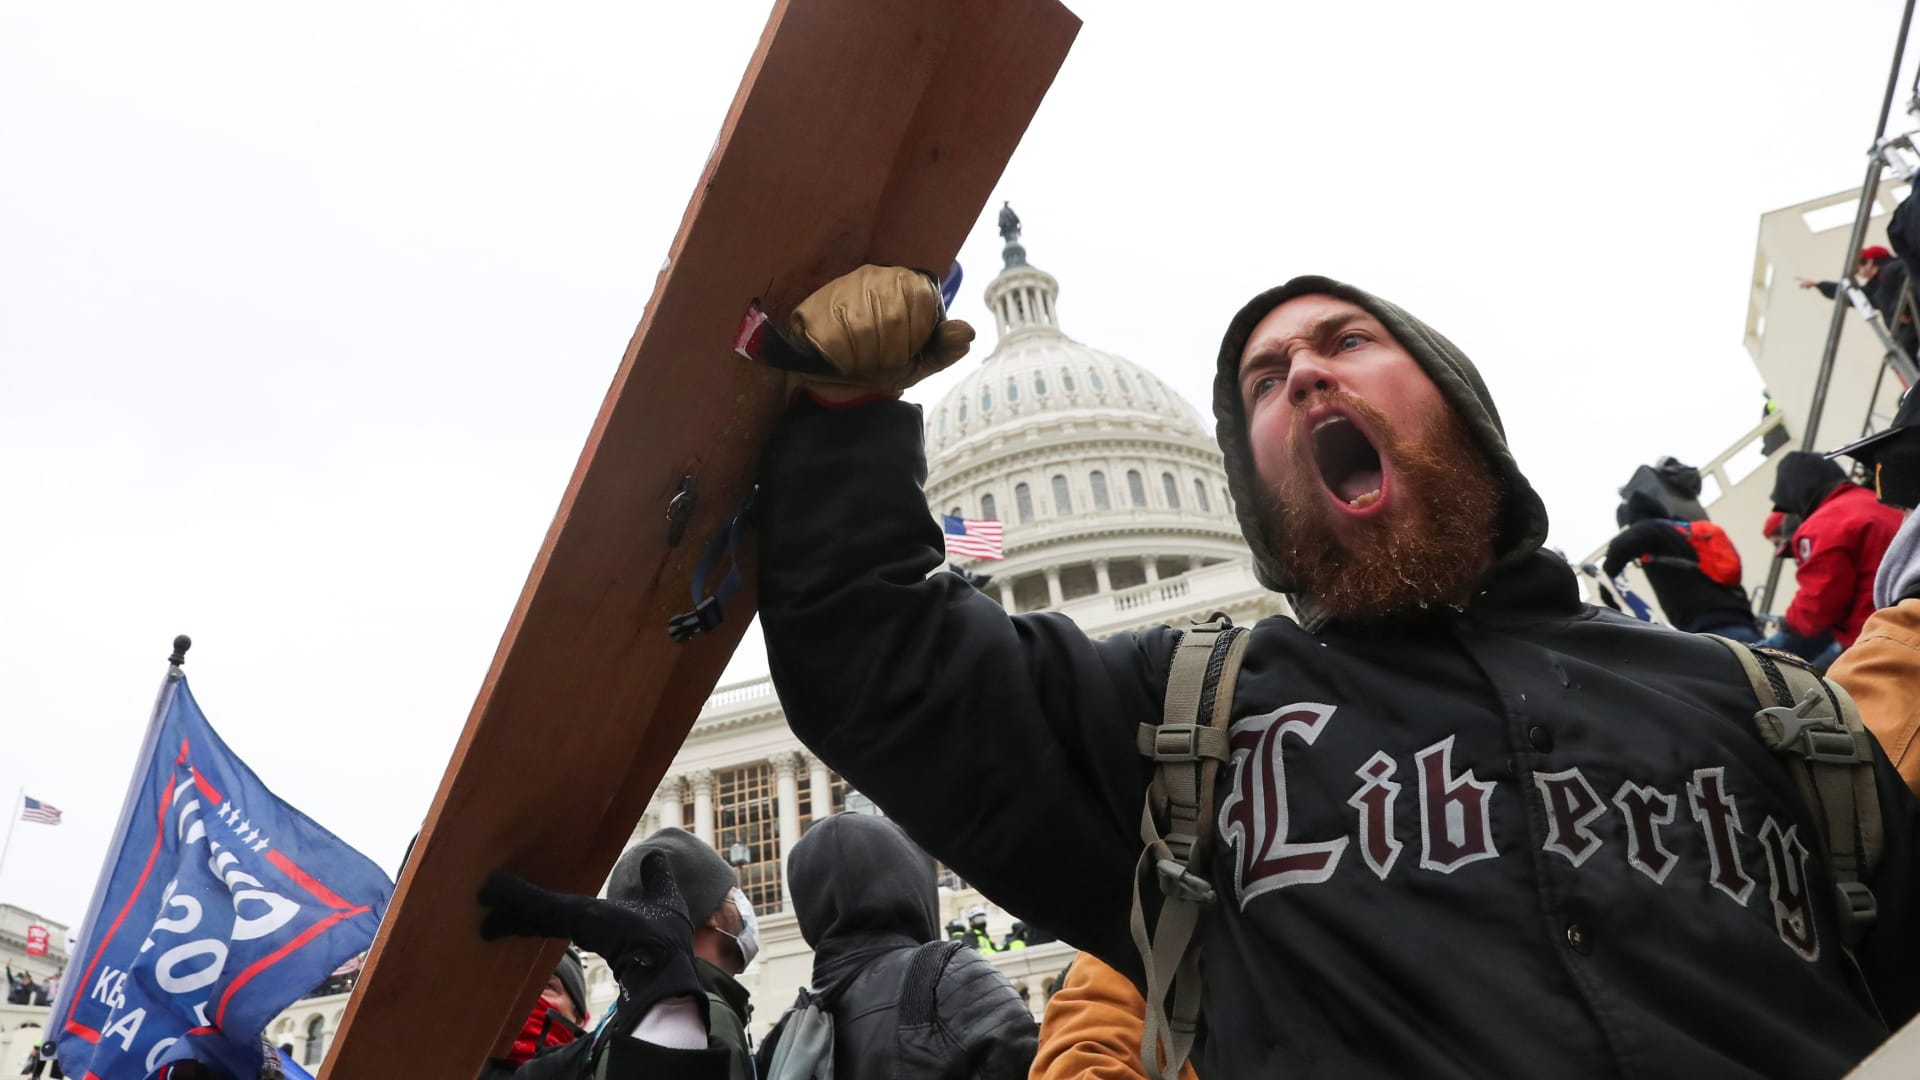 A man shouts as supporters of U.S. President Donald Trump gather in front of the U.S. Capitol Building in Washington, January 6, 2021.